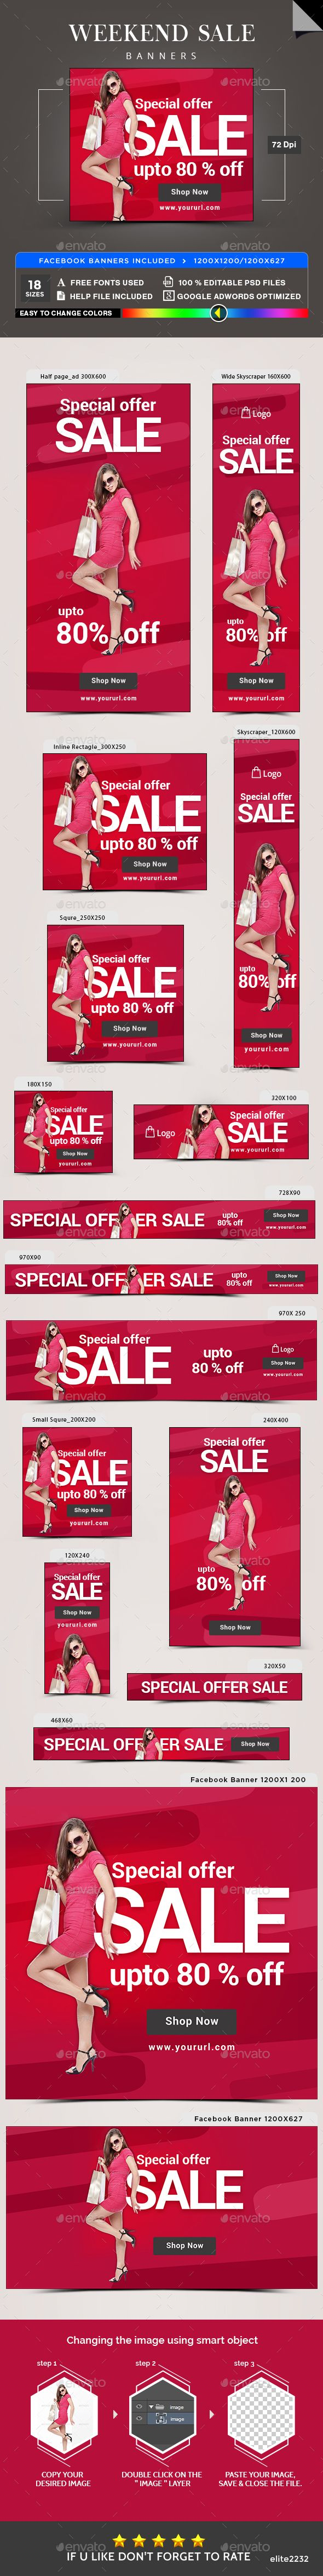 Weekend Sale Banners - Banners & Ads Web Elements Download here : https://graphicriver.net/item/weekend-sale-banners/19873329?s_rank=88&ref=Al-fatih